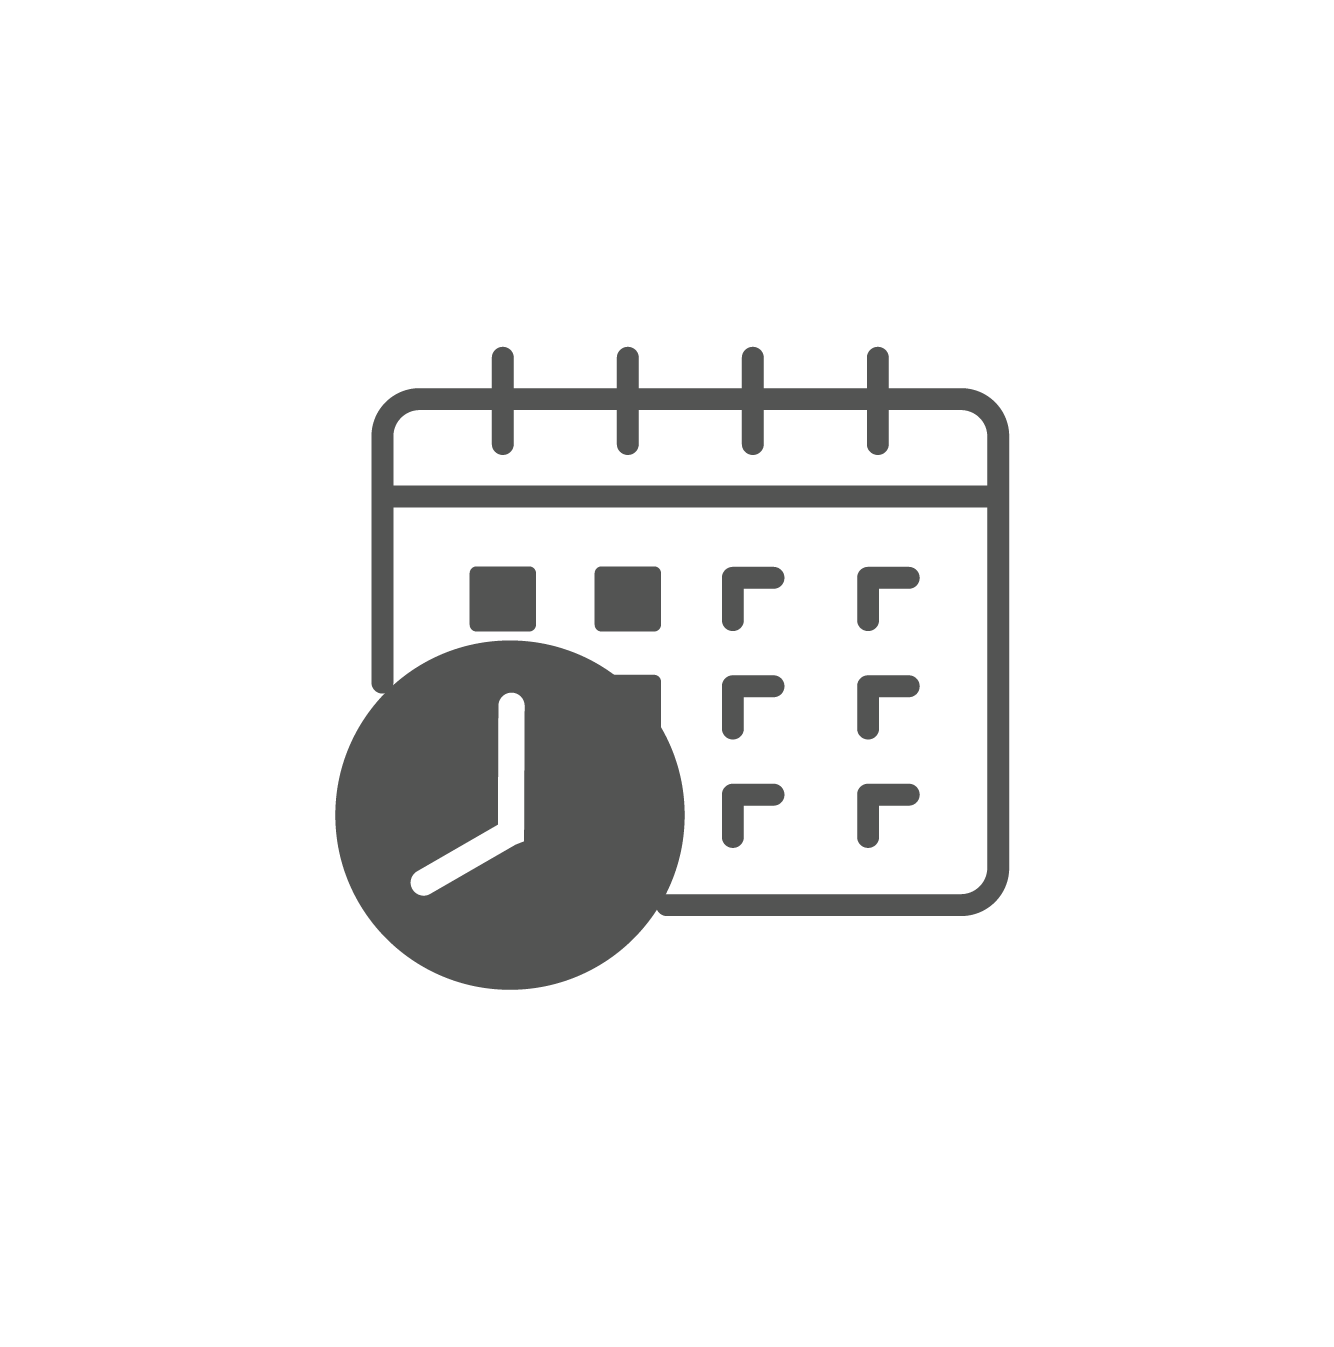 Calendar icon with clock to represent the Prometheus Planning & Scheduling module.